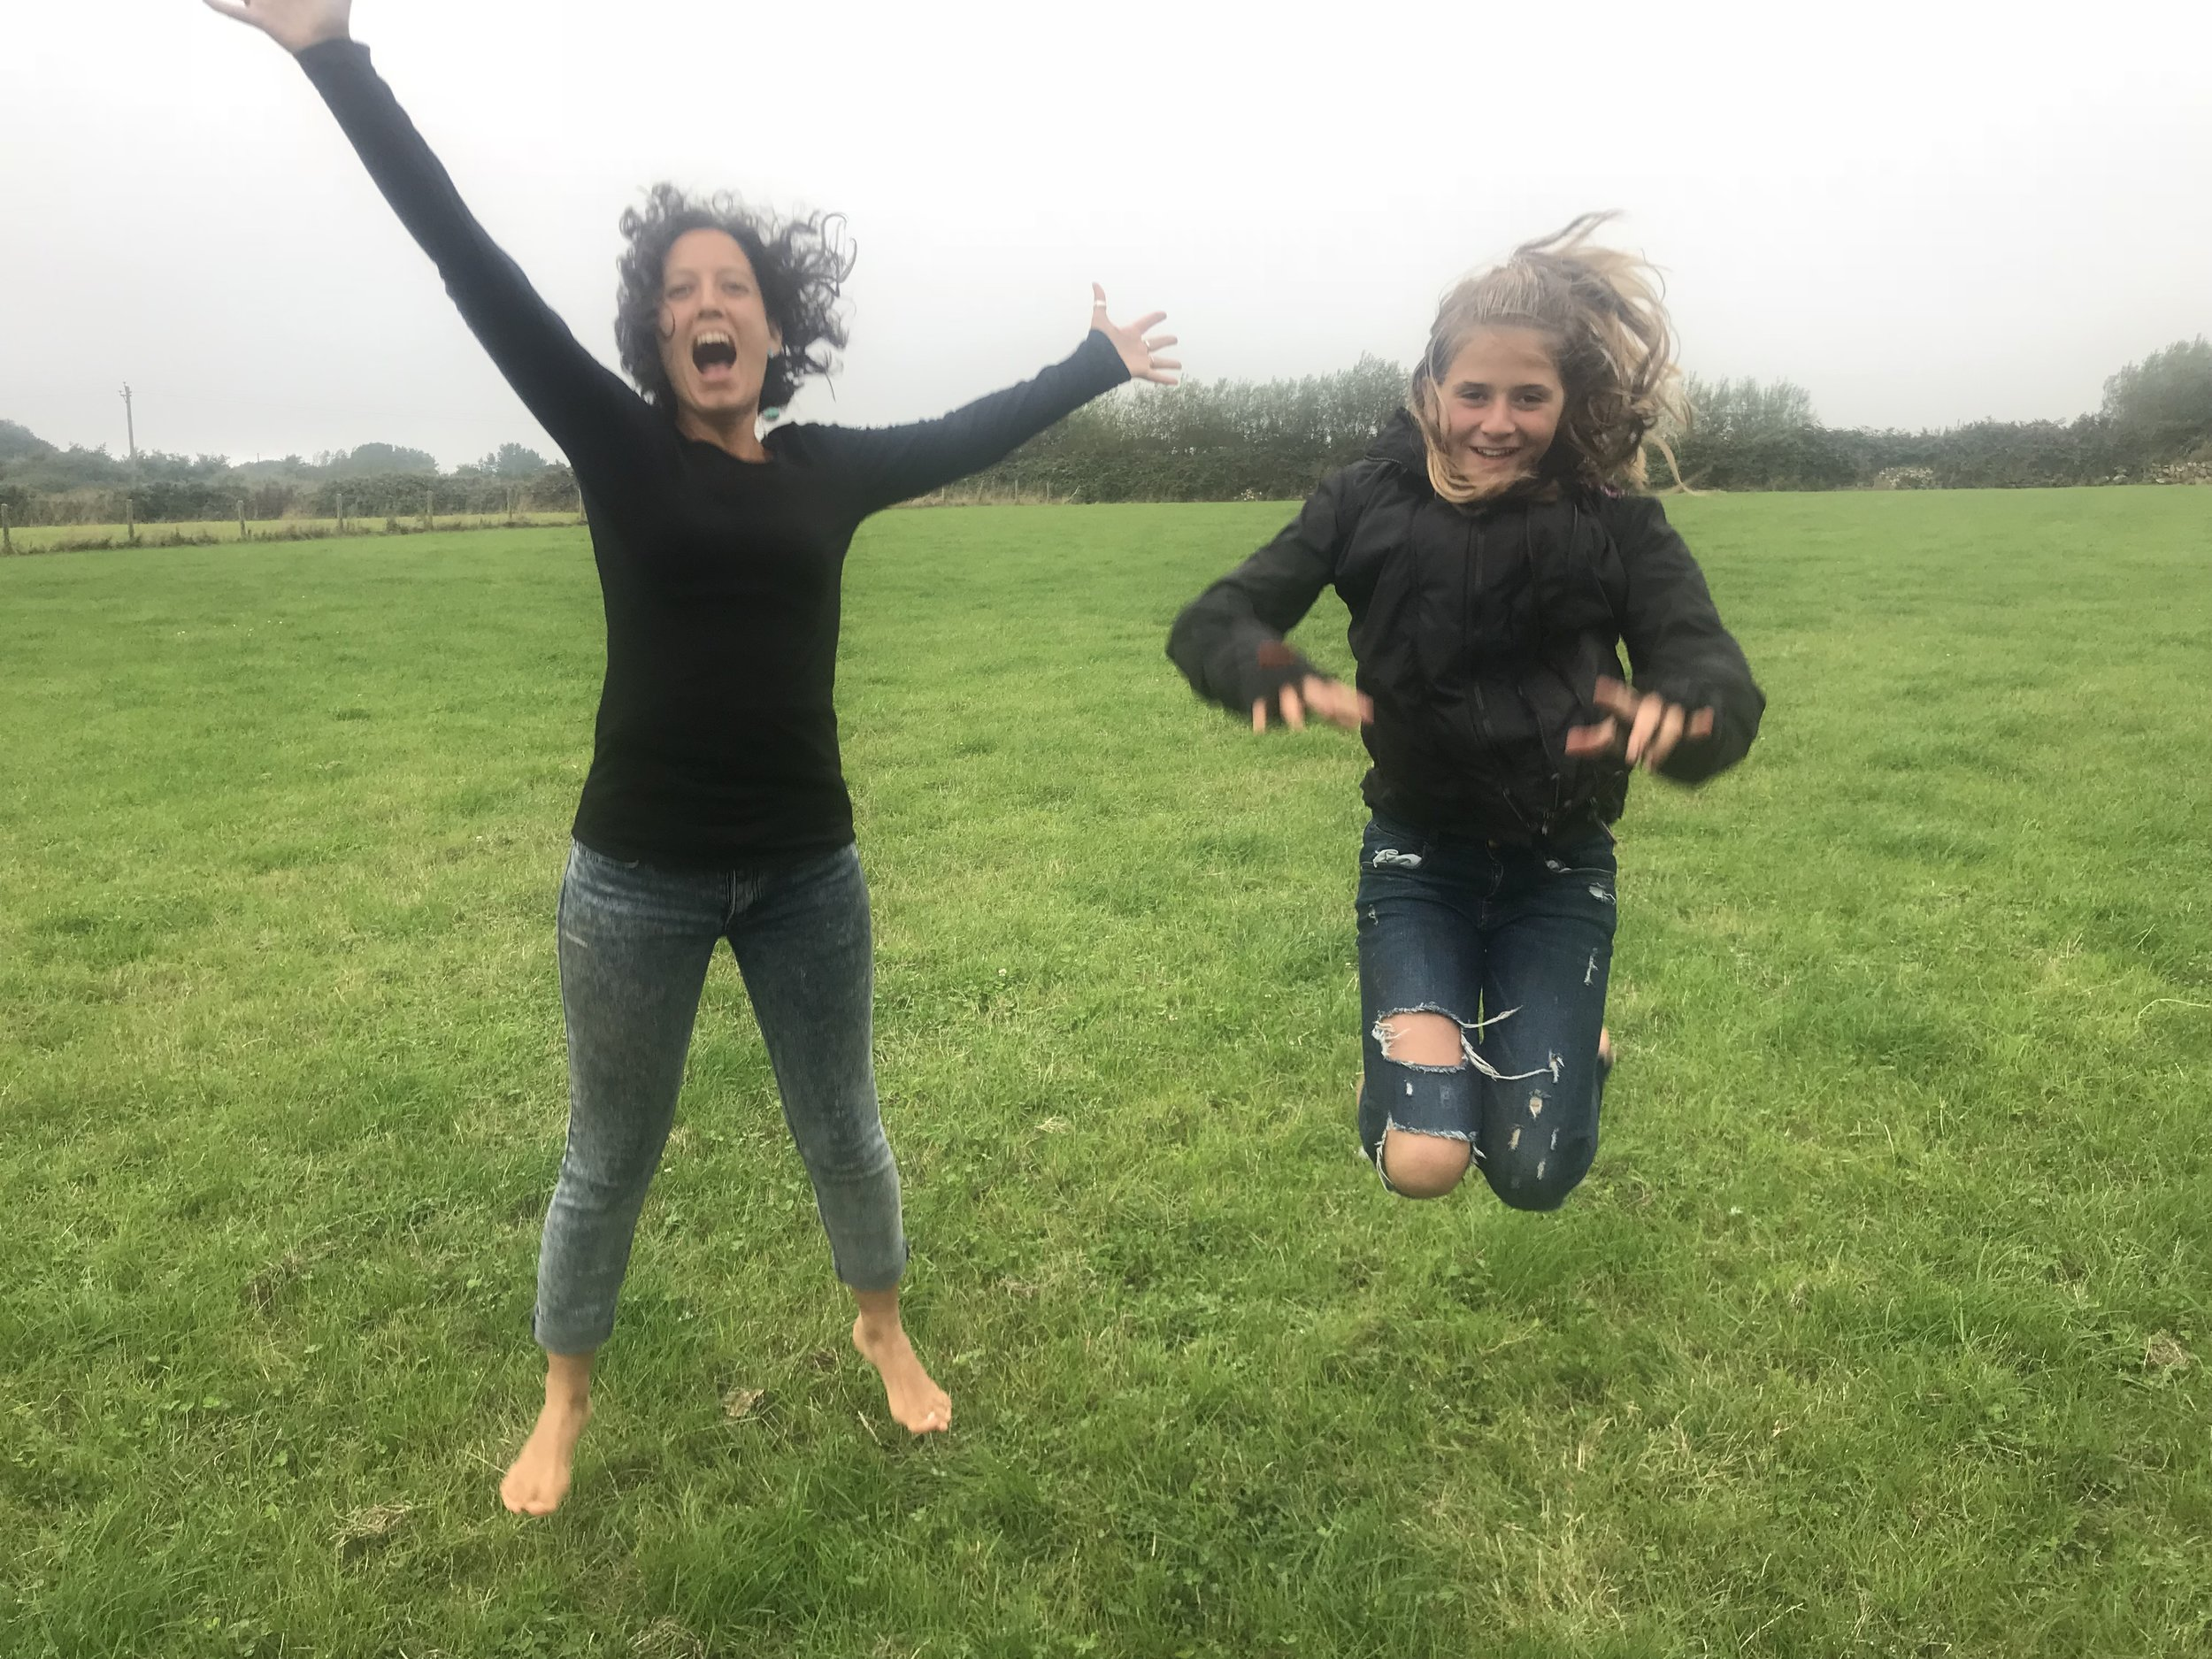 - For Children and Young PeopleIs your child or a child you know feeling anxious or worried? Are they exhibiting challenging behaviours or appearing to lack self-confidence? Wellbeing coaching can help them to discover their inner bounce and natural resilience.